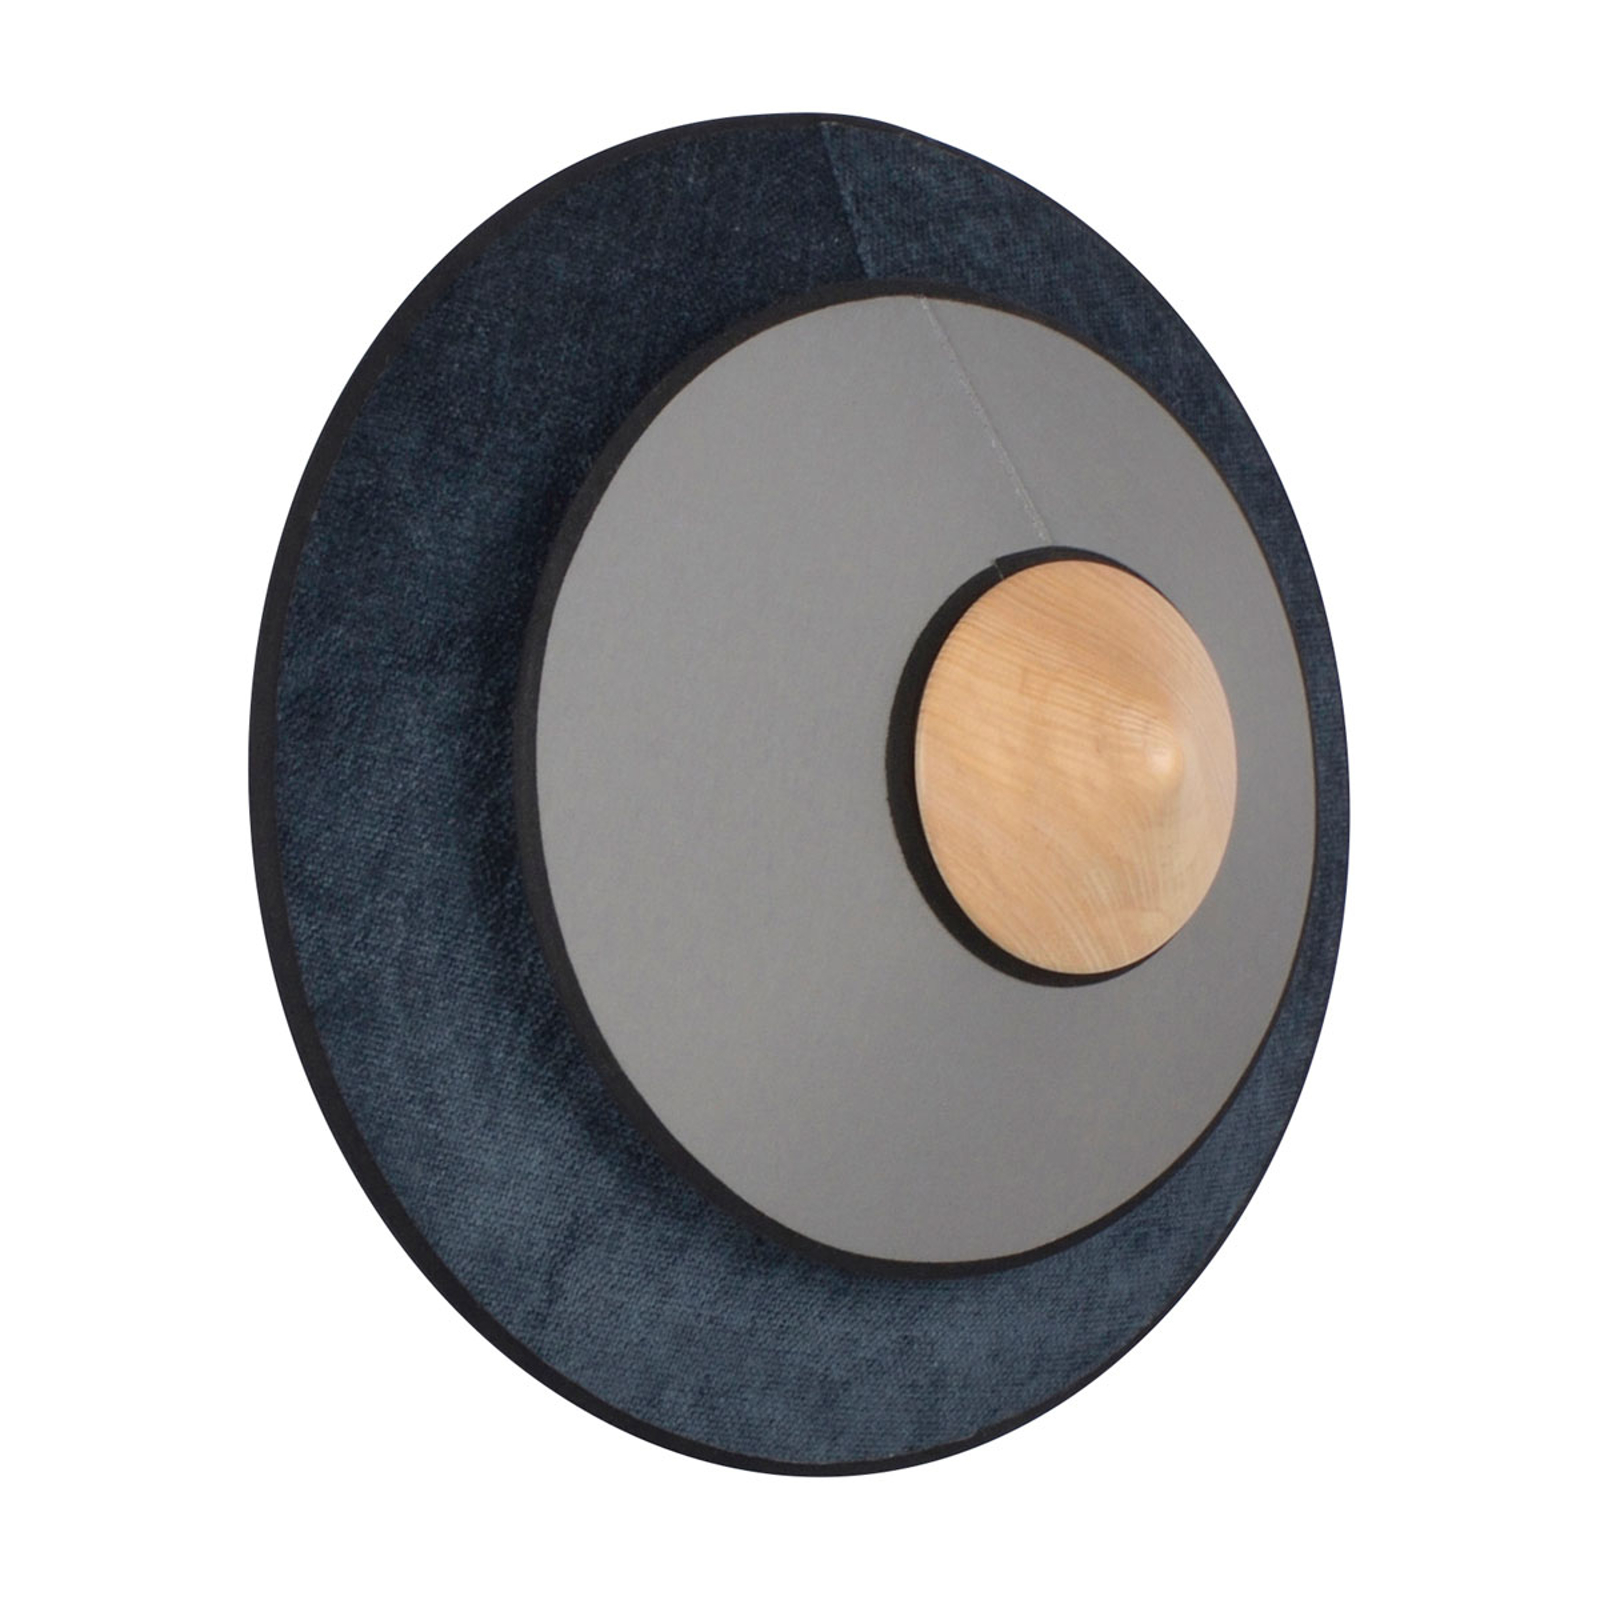 Forestier Cymbal S LED wall light made of fabric_3567050_1